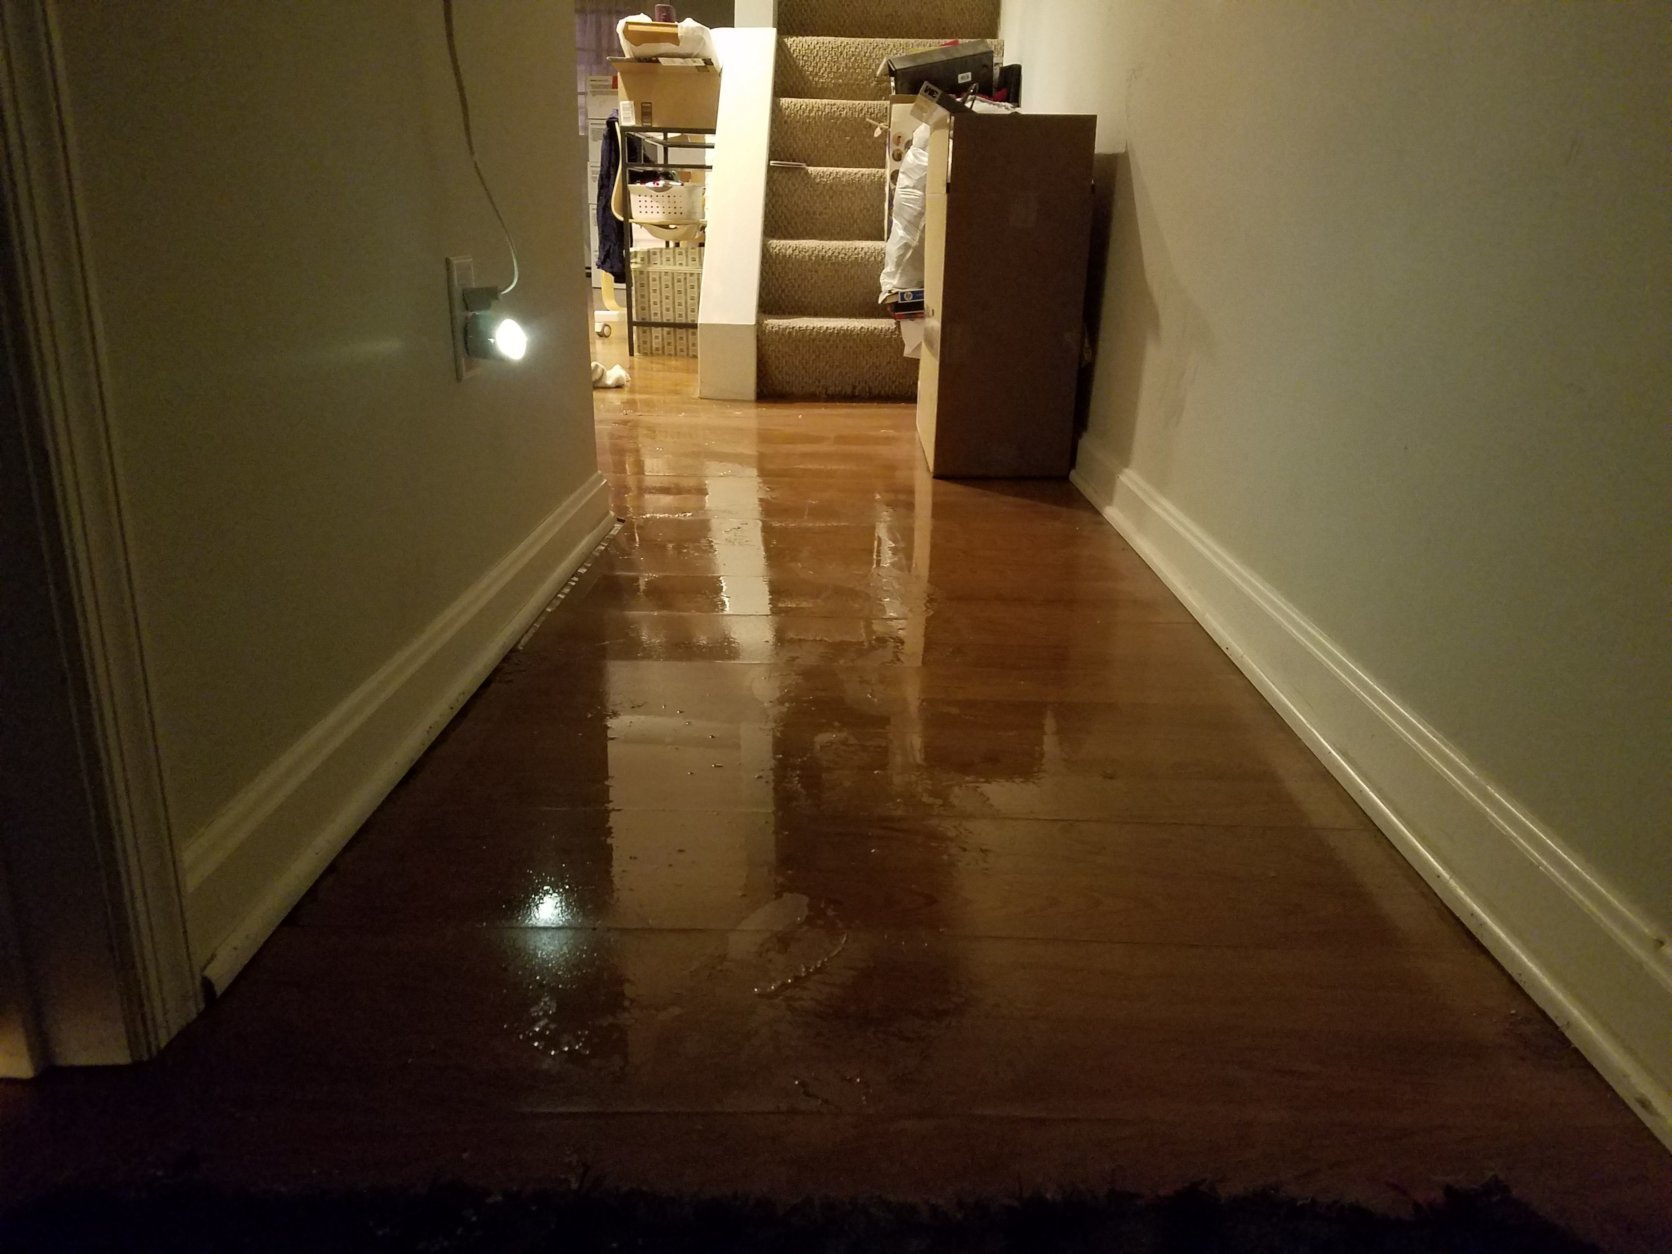 Basement apartments in the District are flooding. (WTOP/Will Vitka)